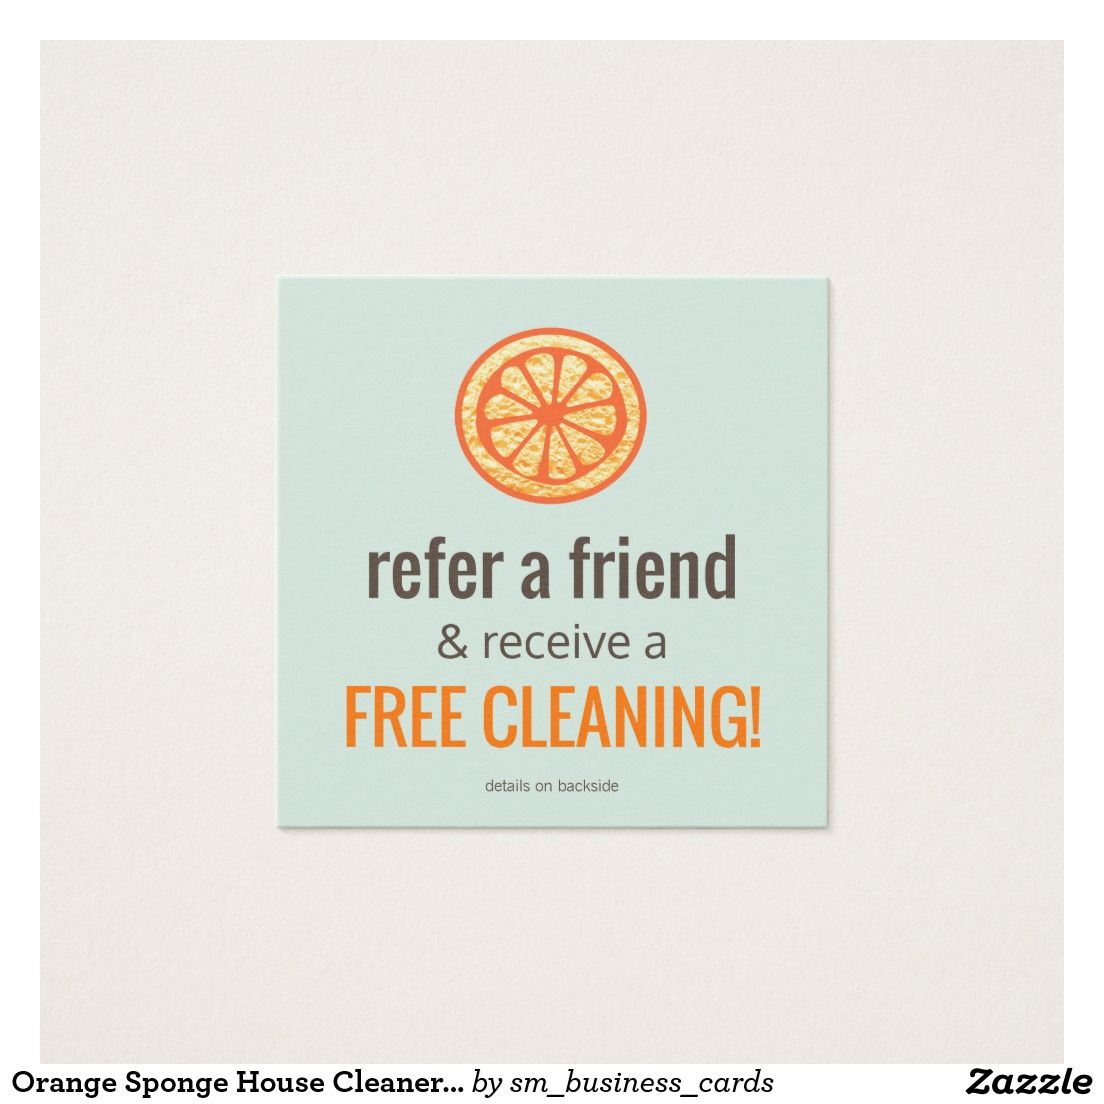 Orange Sponge House Cleaner Customer Referral Card | Cards